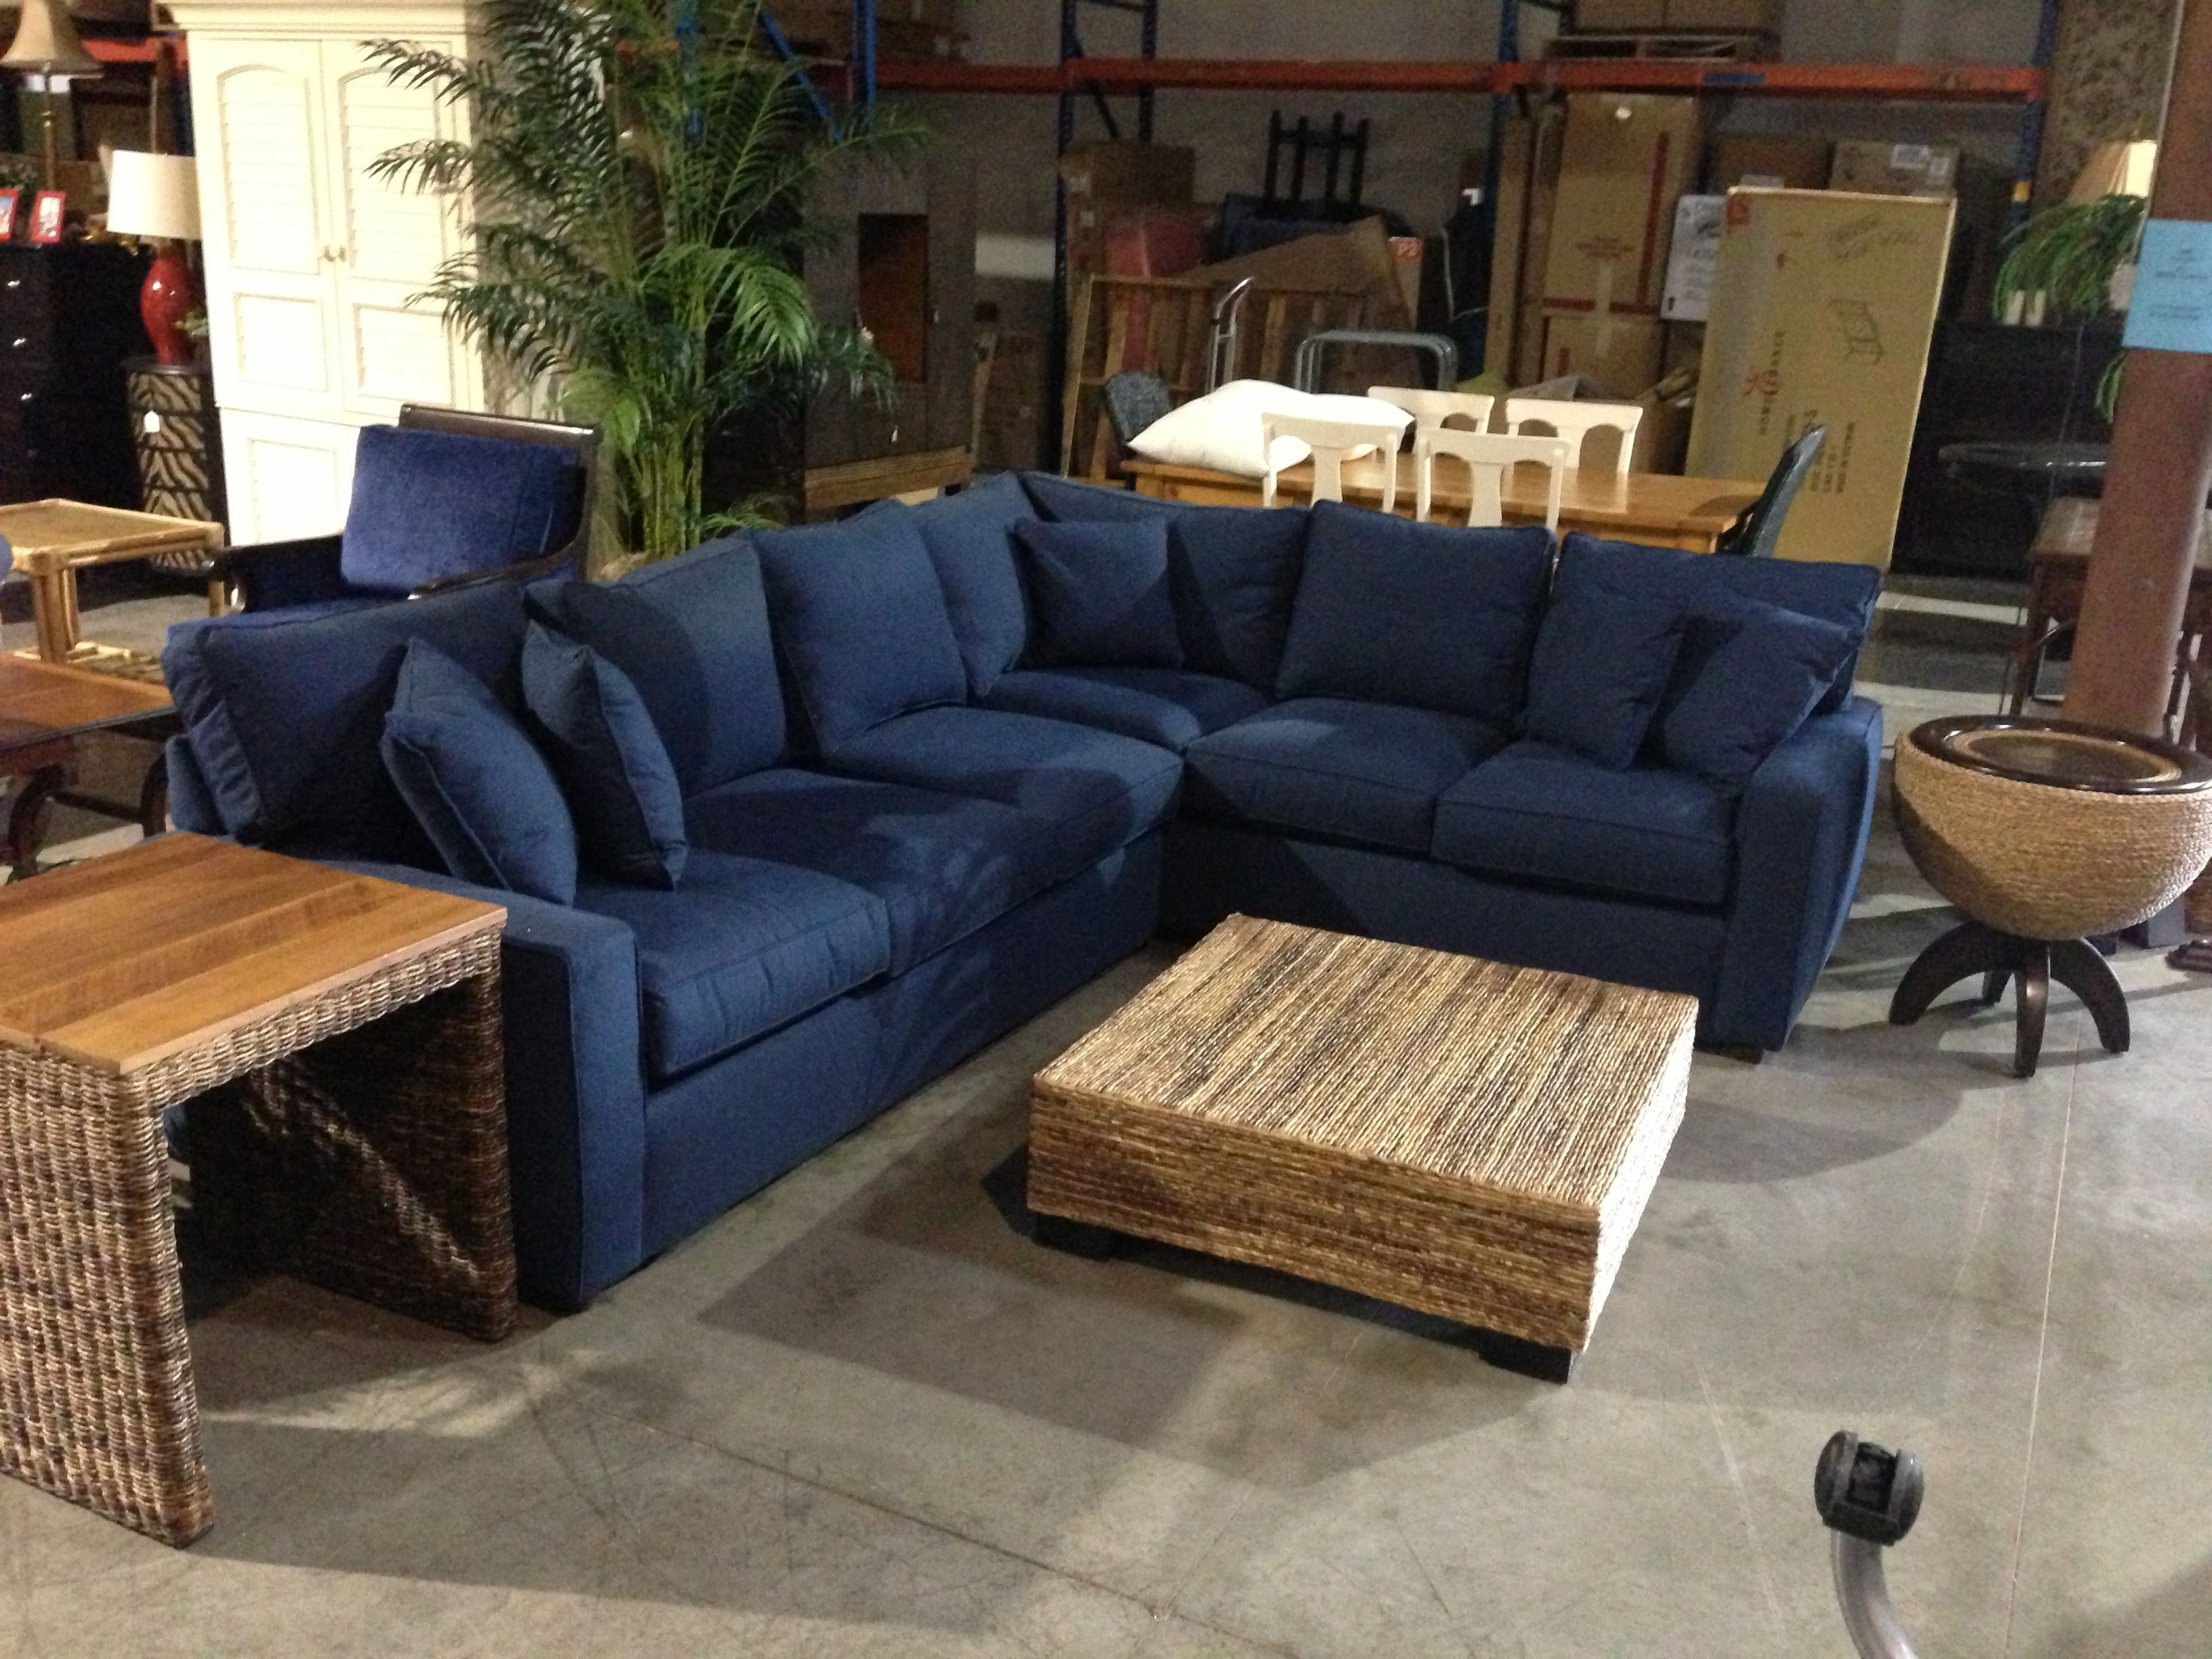 Image Result For Beach Houses With Blue Sectional Sofa Blue Sofas Living Room Blue Sofa Living Blue Sectional Couch